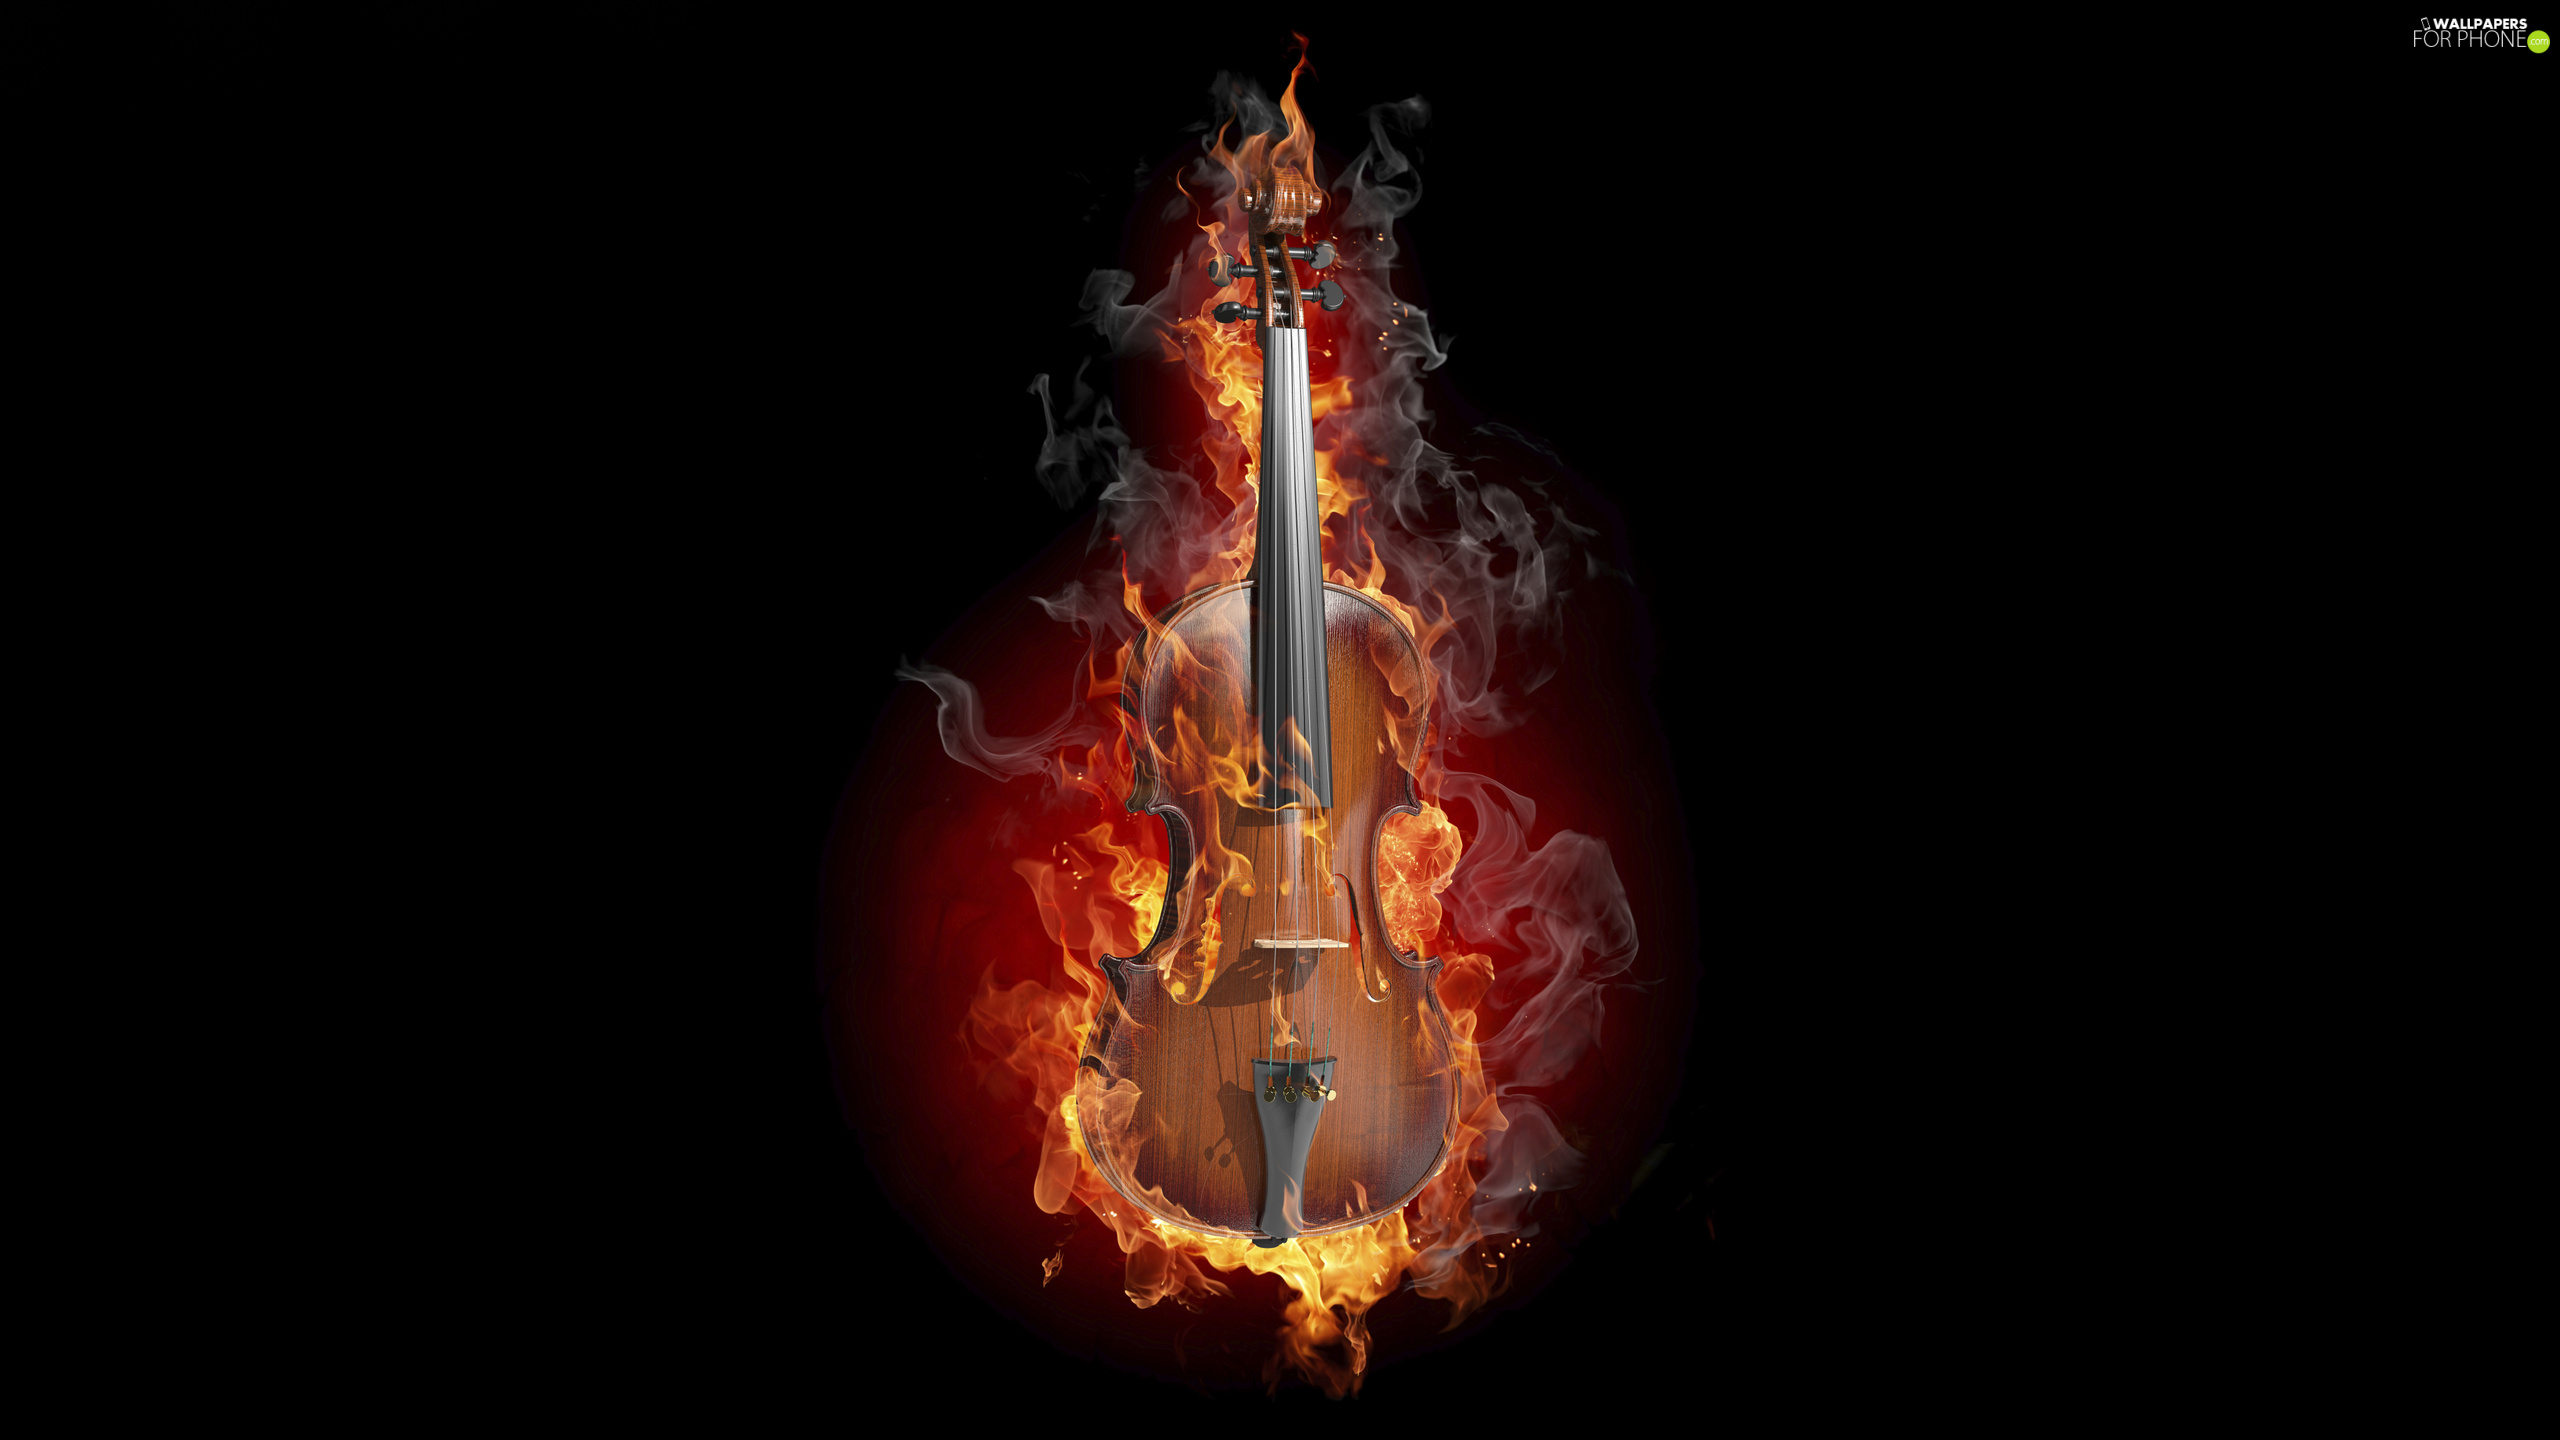 violin, Black, background, Big Fire